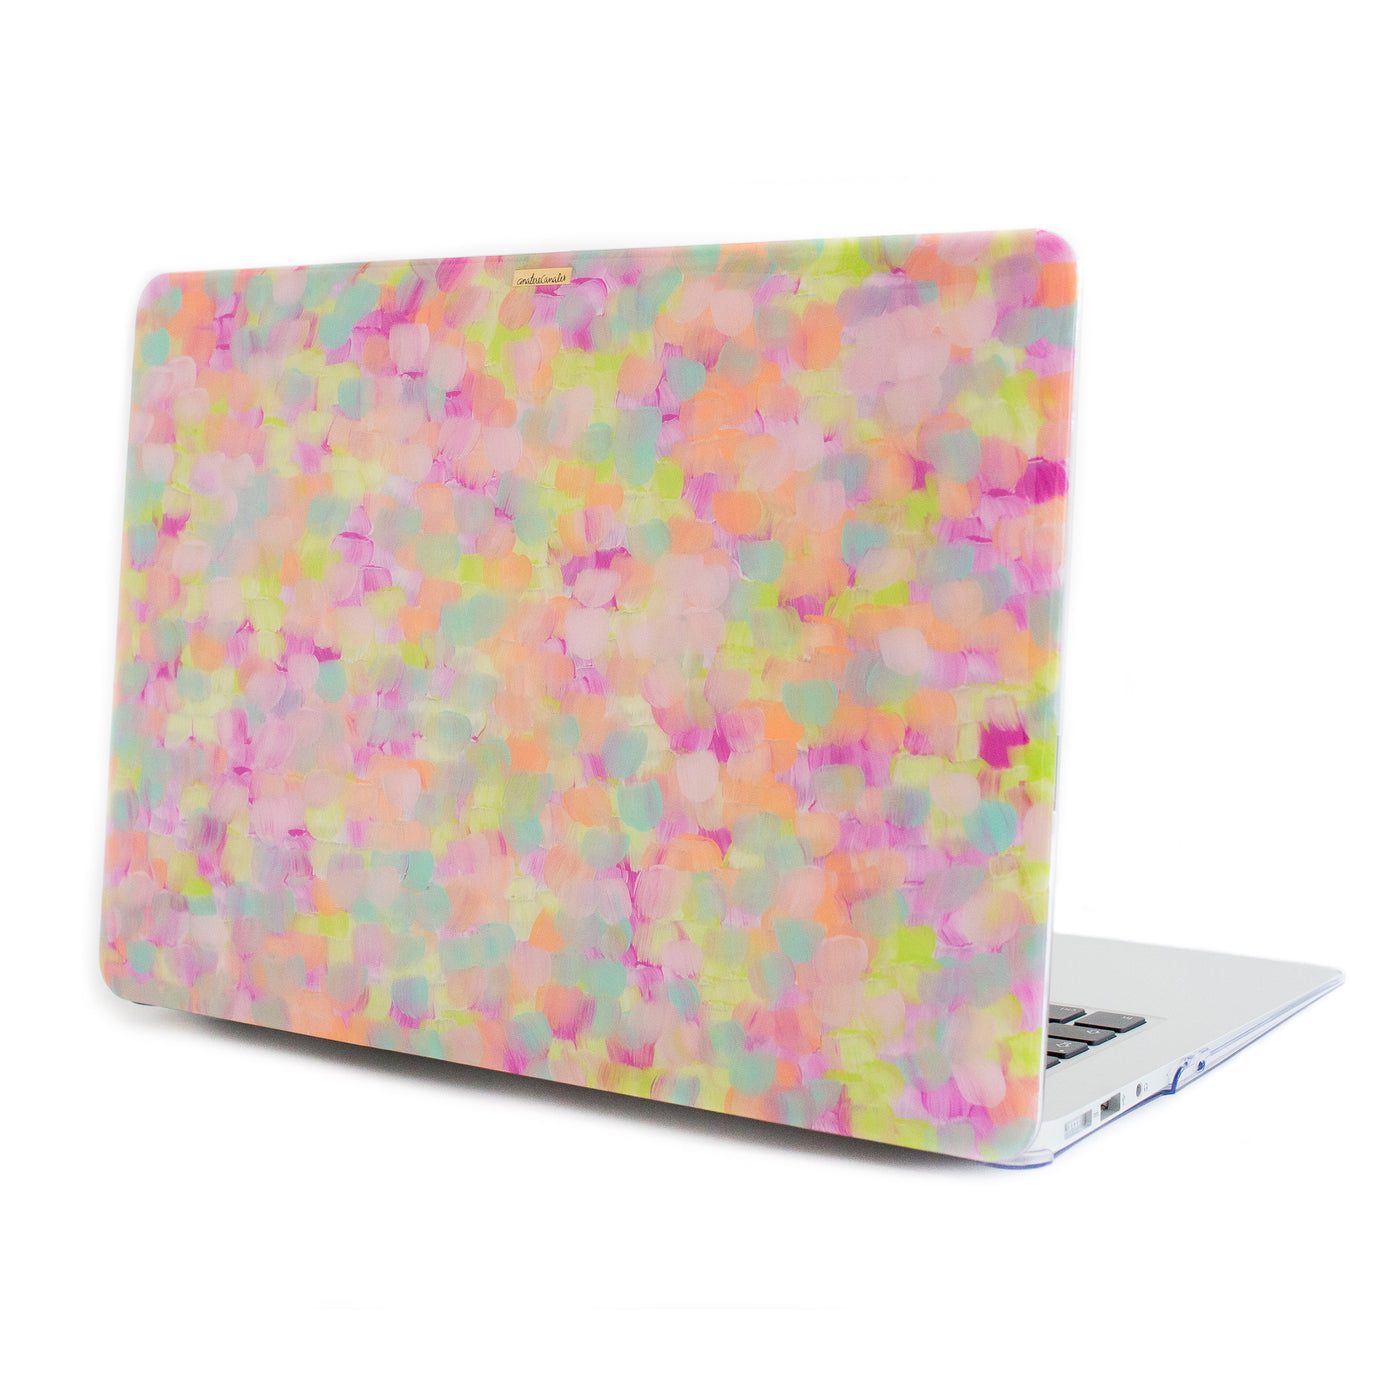 Bouquet Macbook - Ana Tere Canales